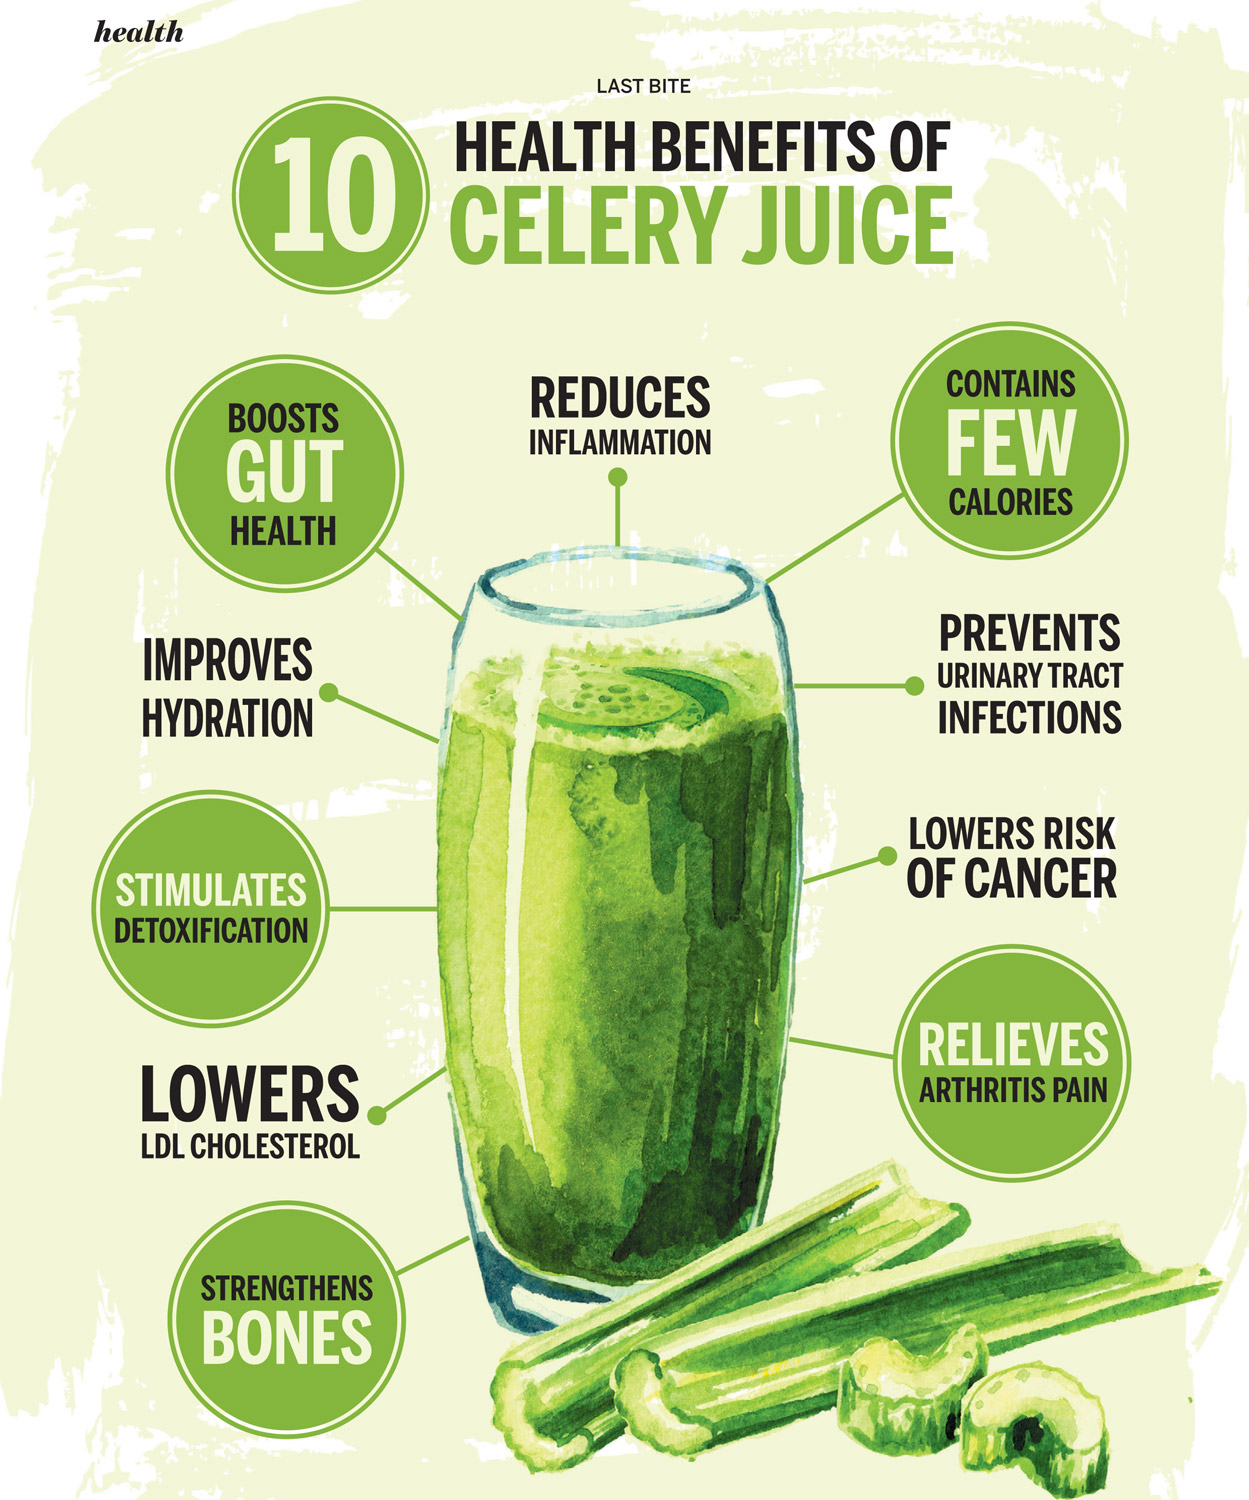 10 health benefits of celery juice | edible sarasota